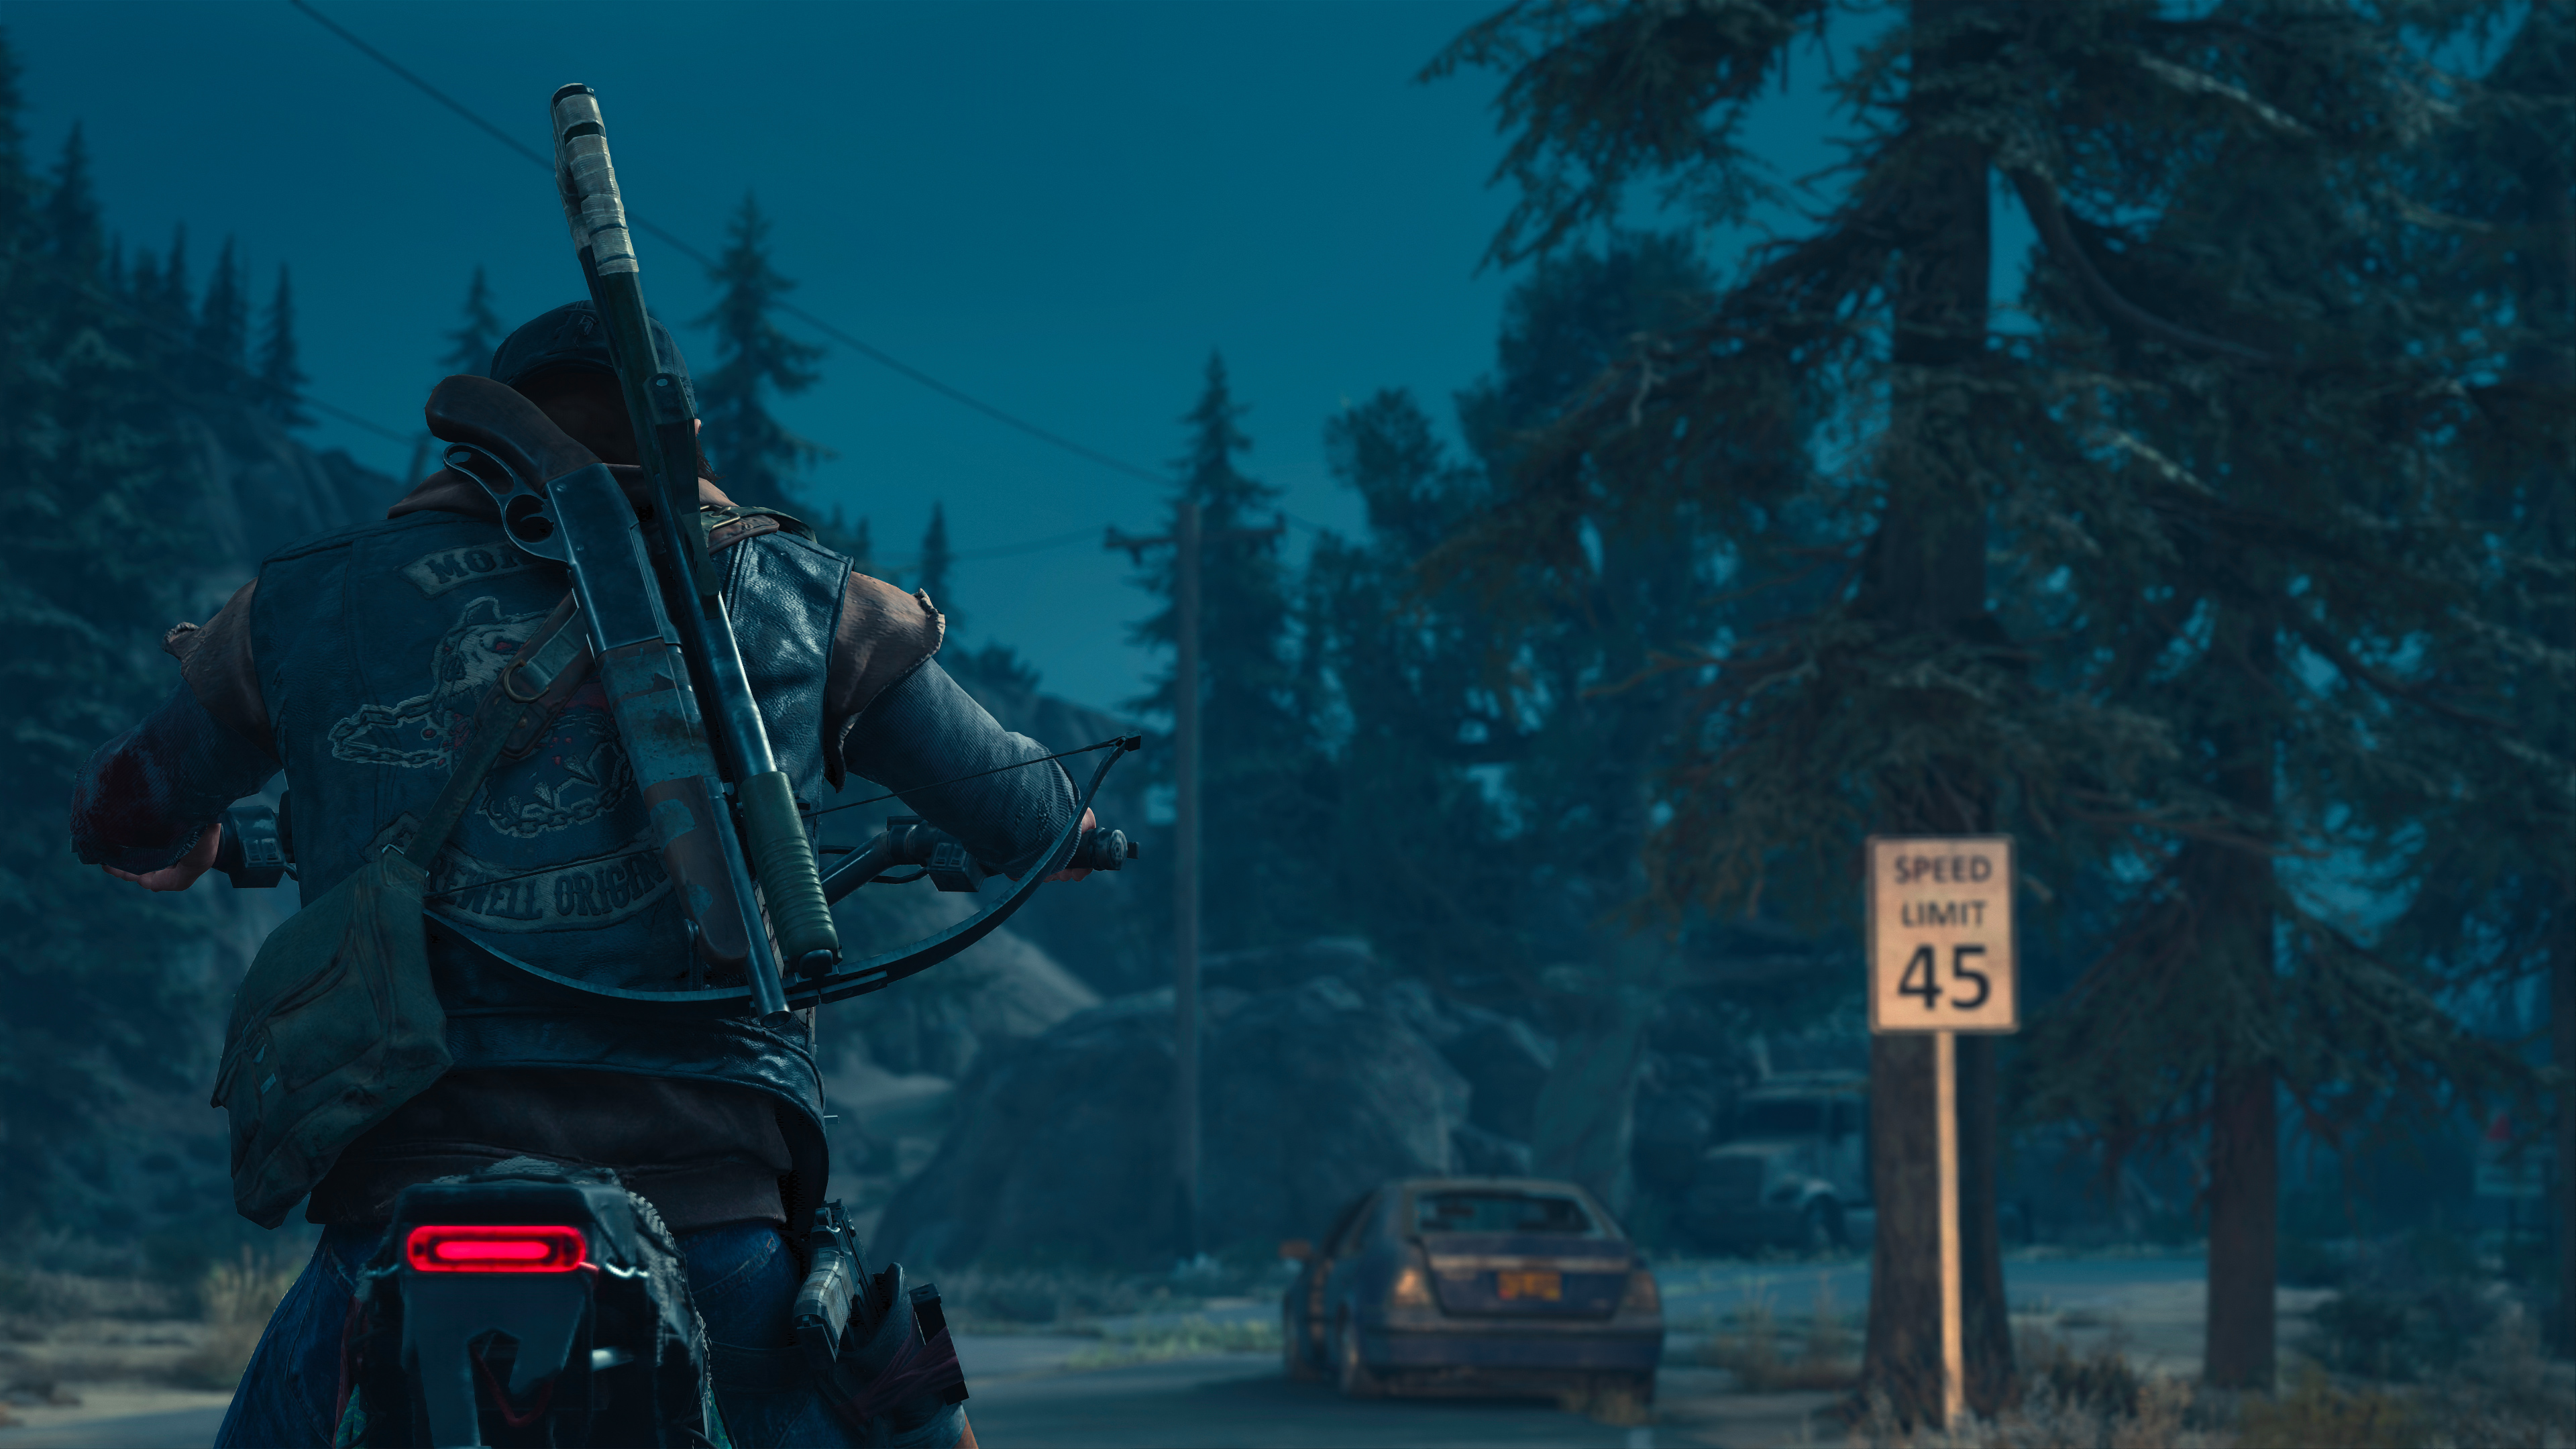 days gone 1568057002 - Days Gone - hd-wallpapers, games wallpapers, days gone wallpapers, 4k-wallpapers, 2019 games wallpapers